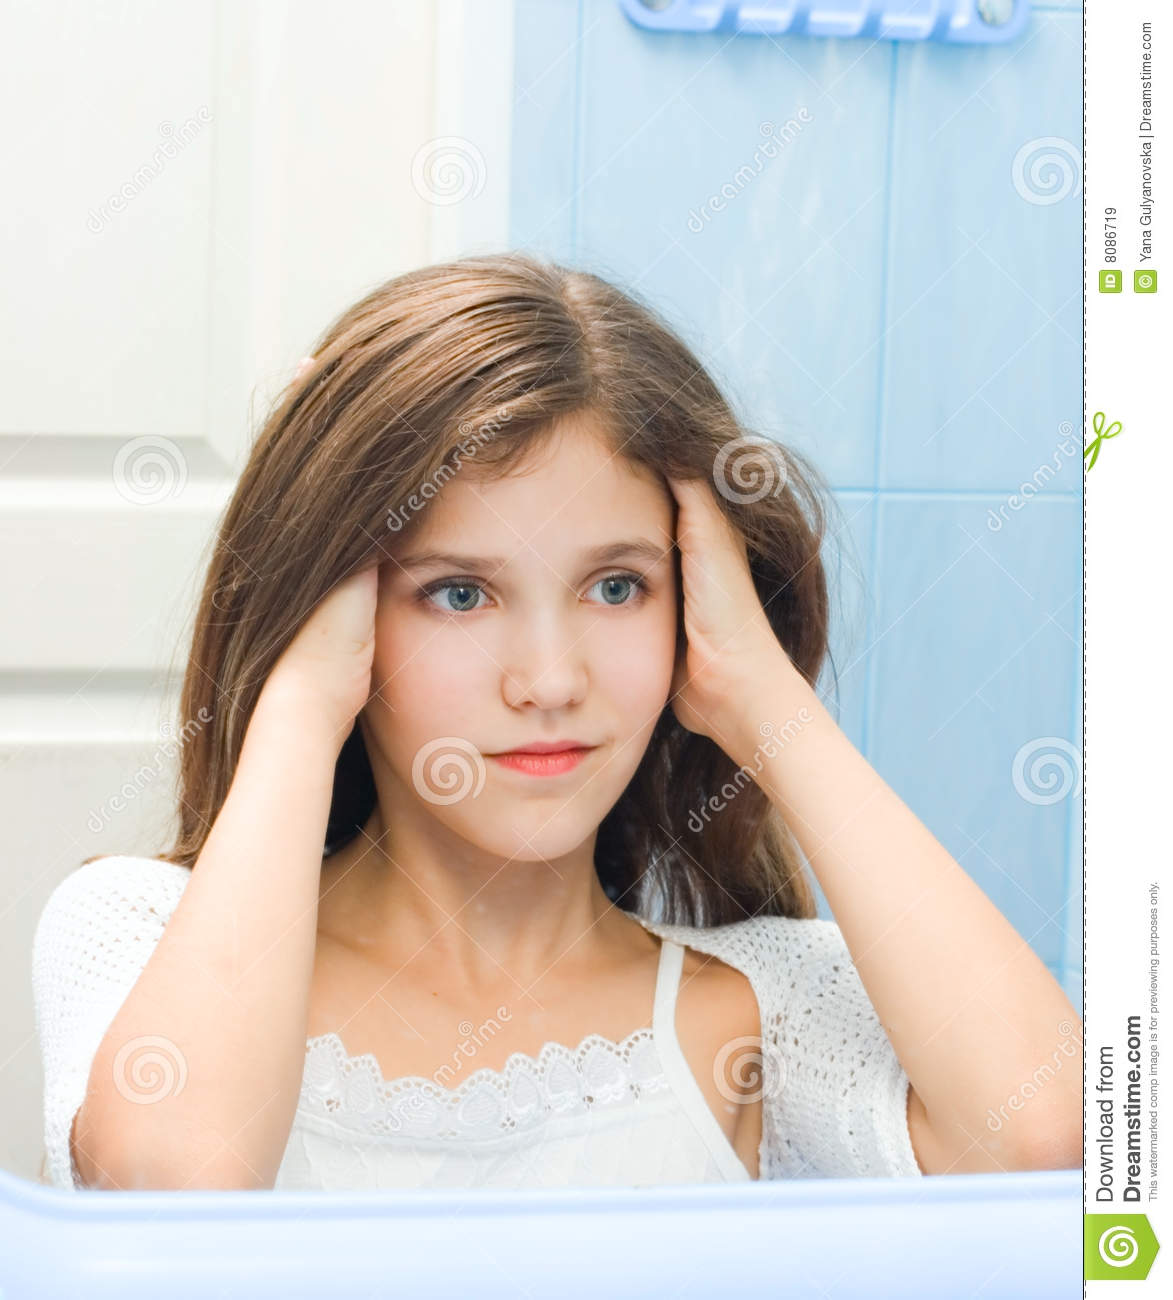 Bathroom Pic Girl: Teen Girl In Bathroom Royalty Free Stock Images